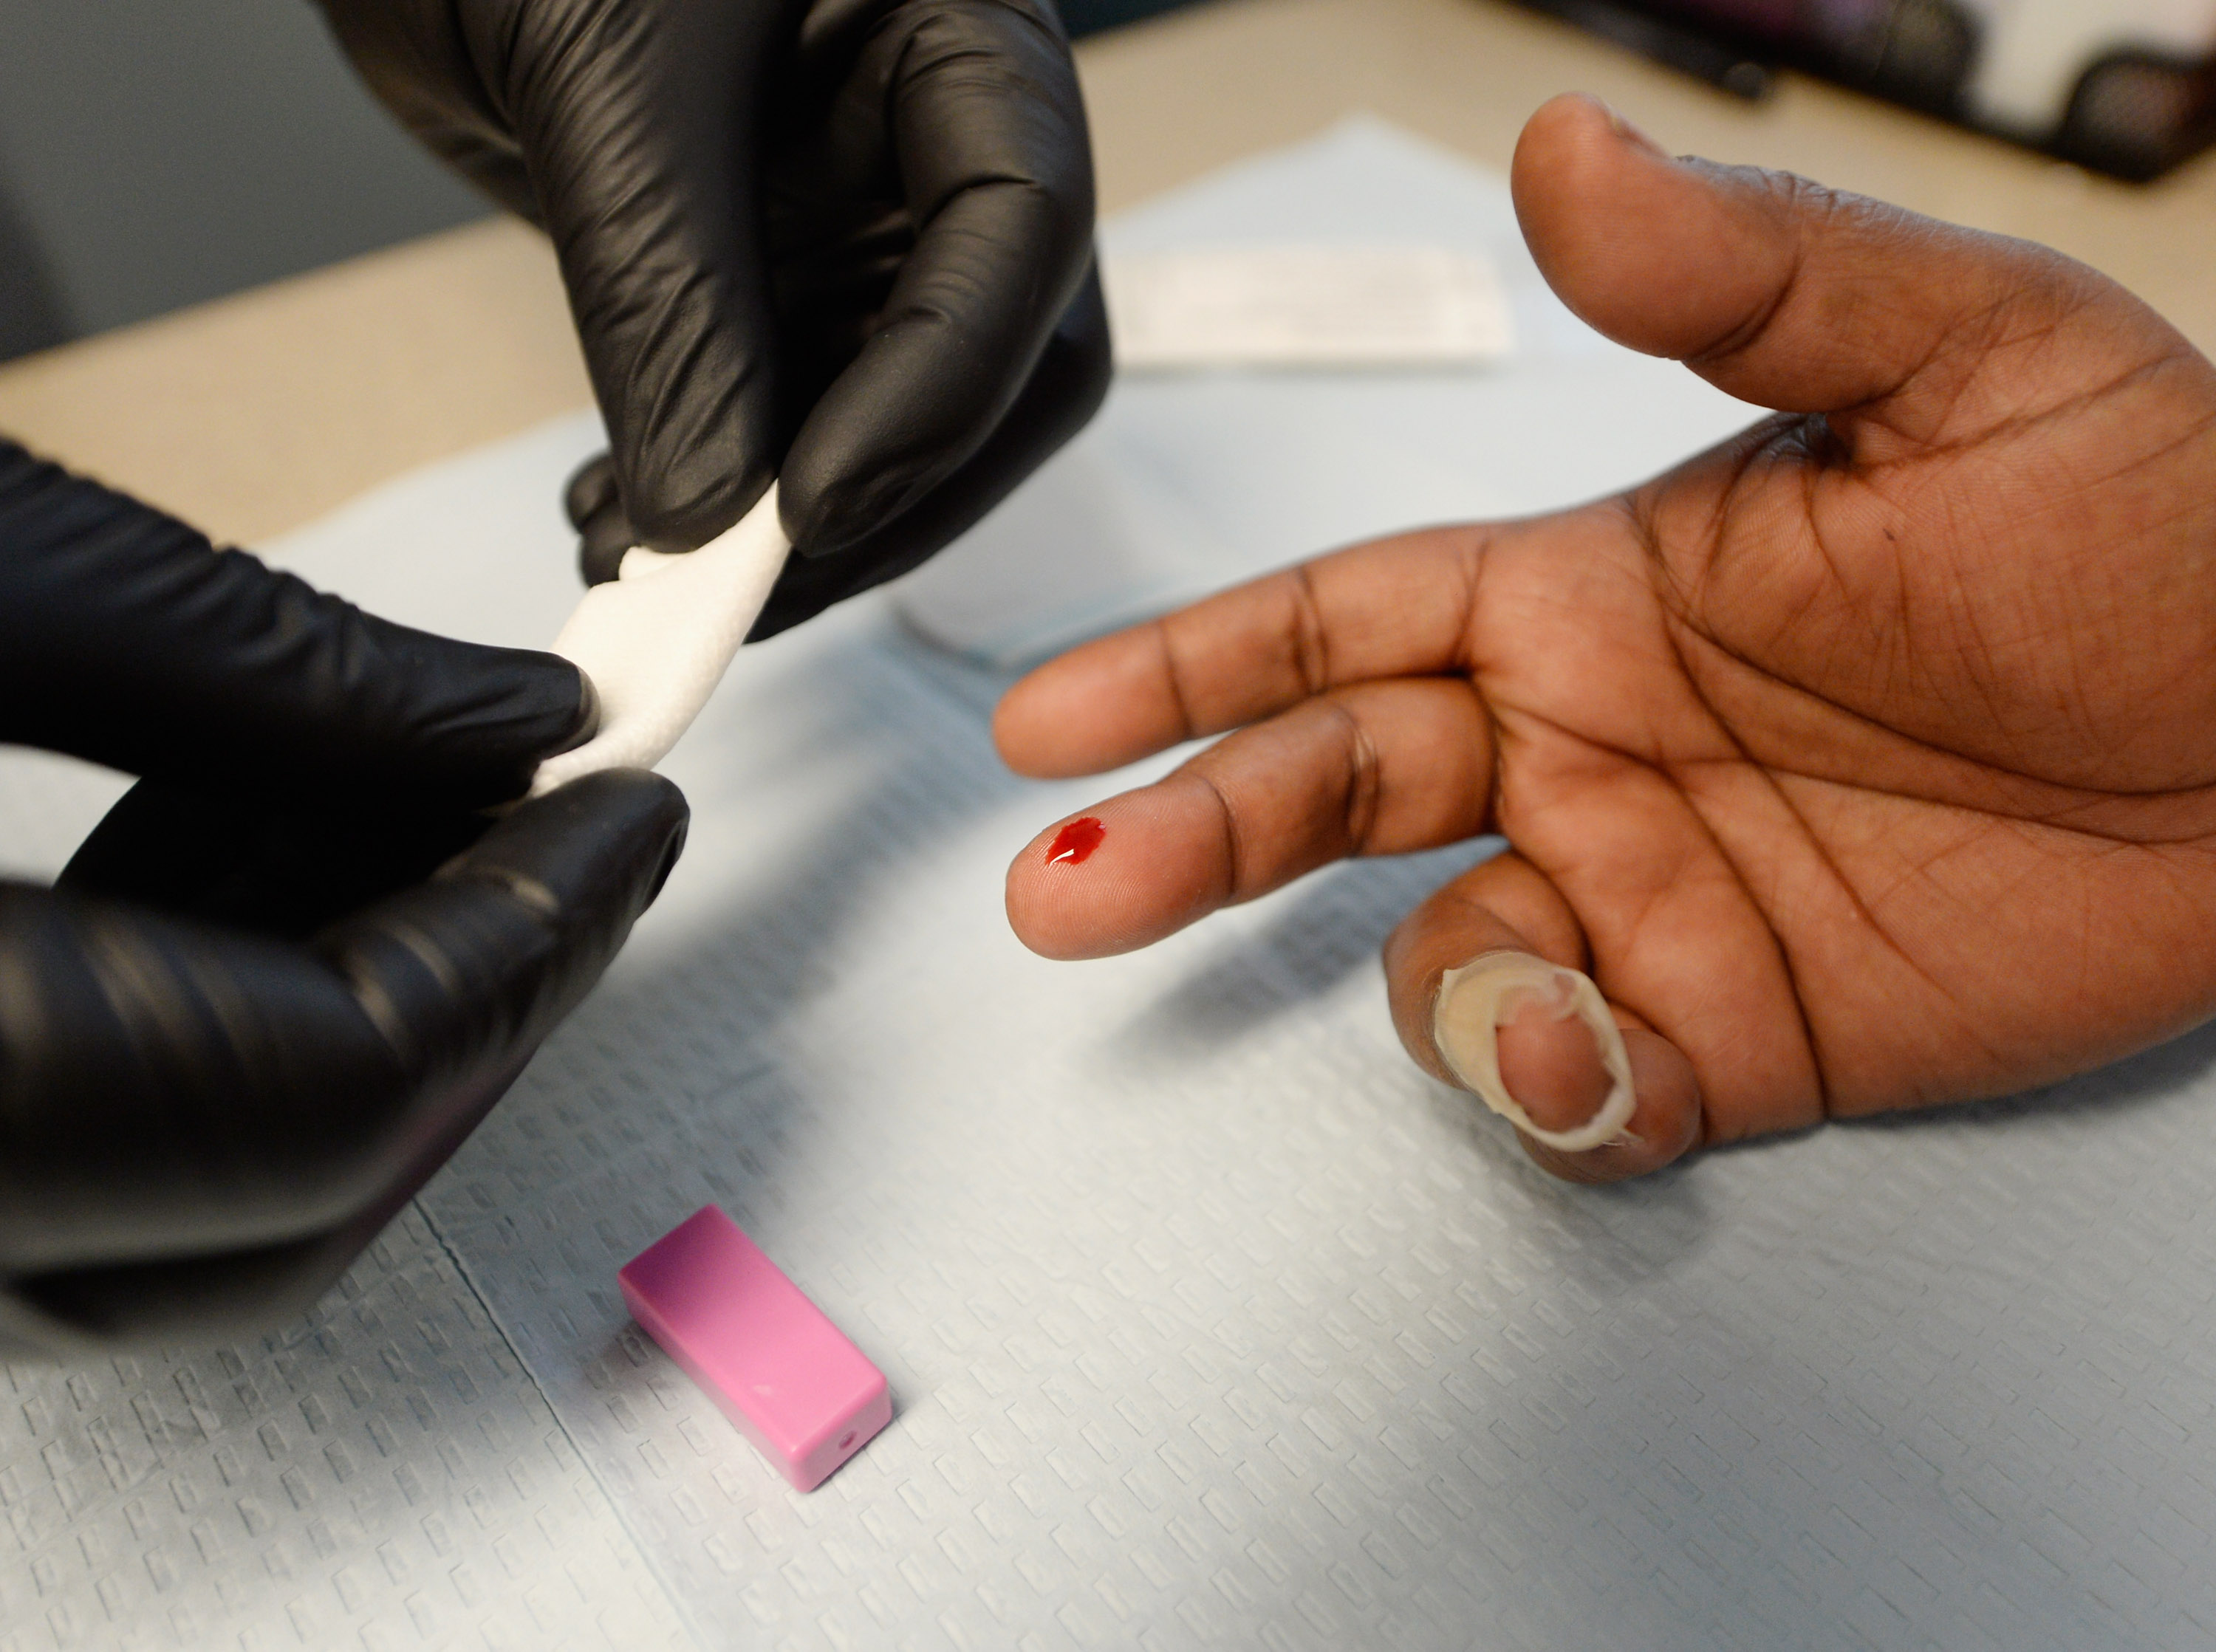 Health Fair In Los Angeles Offers Free Screenings For Residents